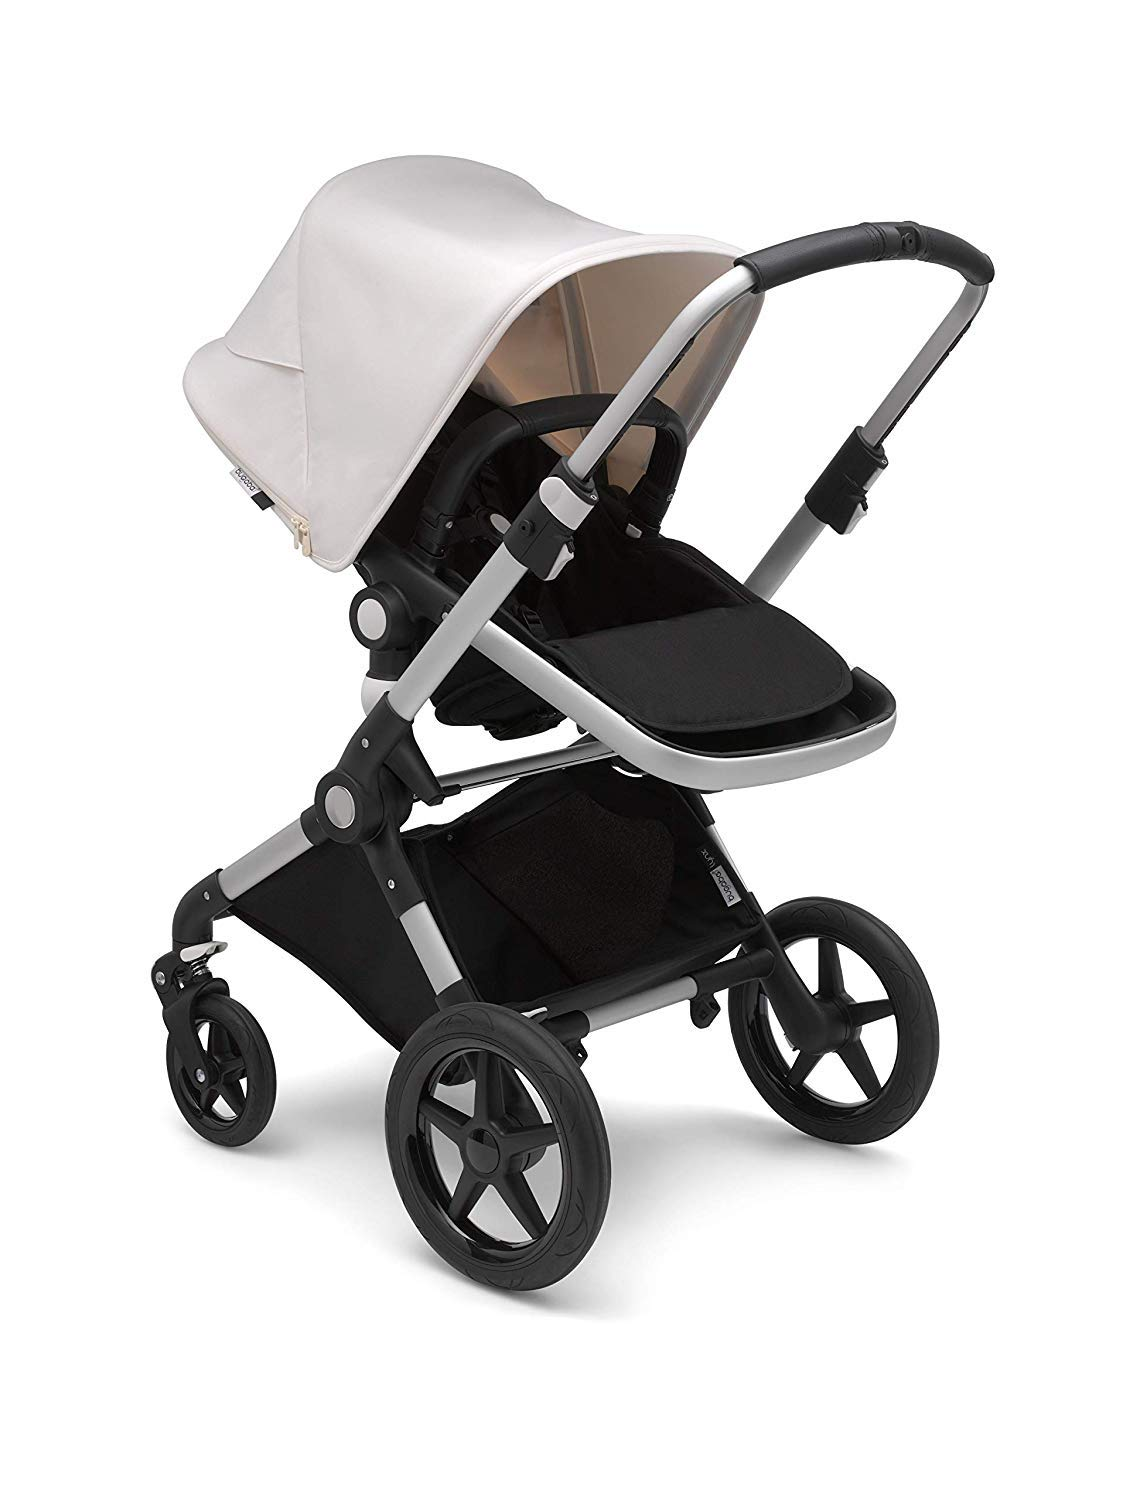 Bugaboo Lynx - The Lightest Full-Size Baby Stroller - All-Terrain Stroller with an Effortless Push and One-Handed Steering - Compatible with Bugaboo Turtle by Nuna Car Seat – Alu/Black-Fresh White